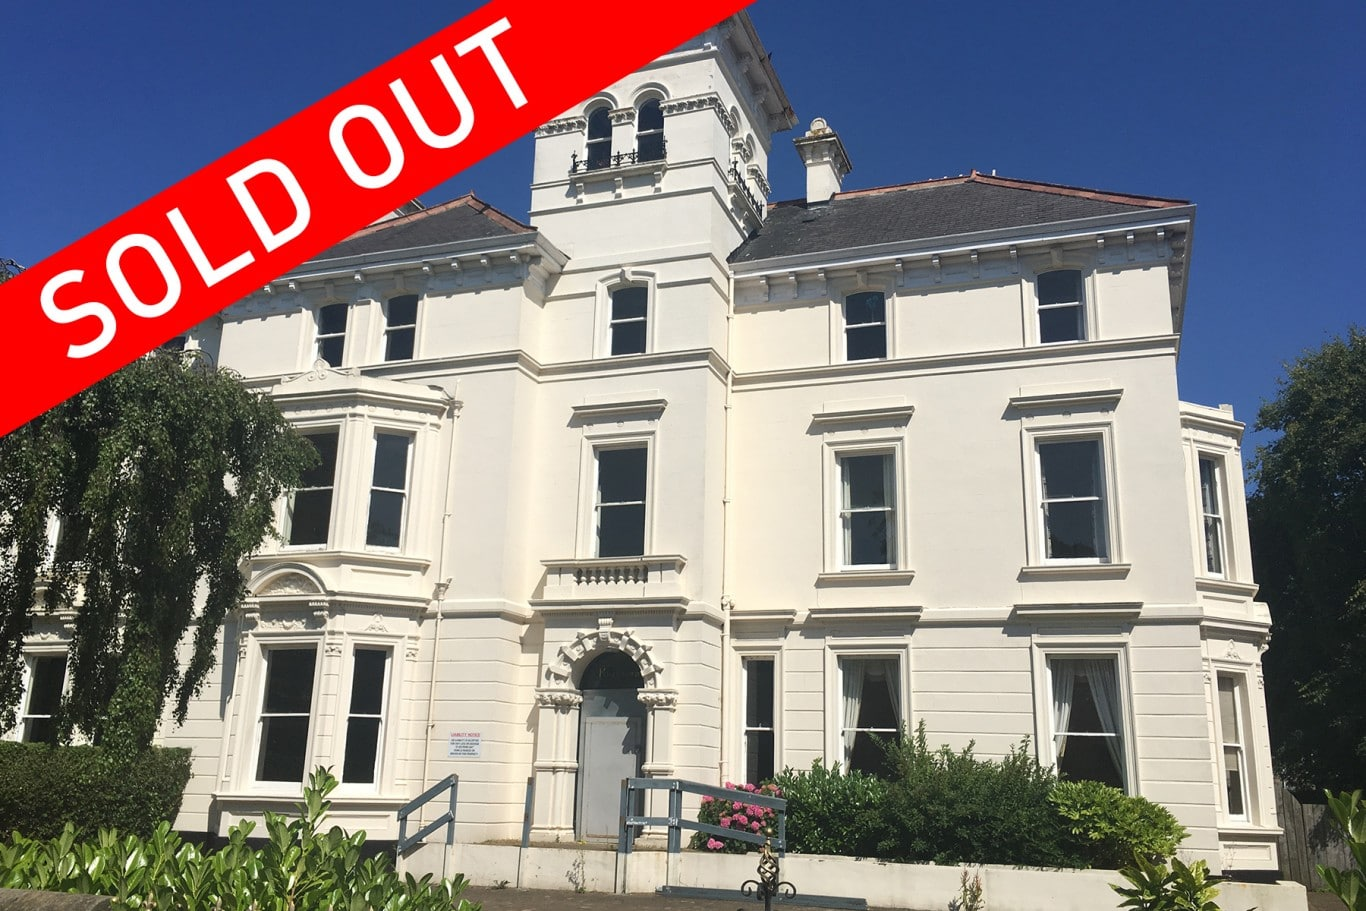 Victorian Terrace Within An Affluent Residential Area Our Stunning New Acquisition Is A Former Care Home With Huge Potential For Luxury Redevelopment